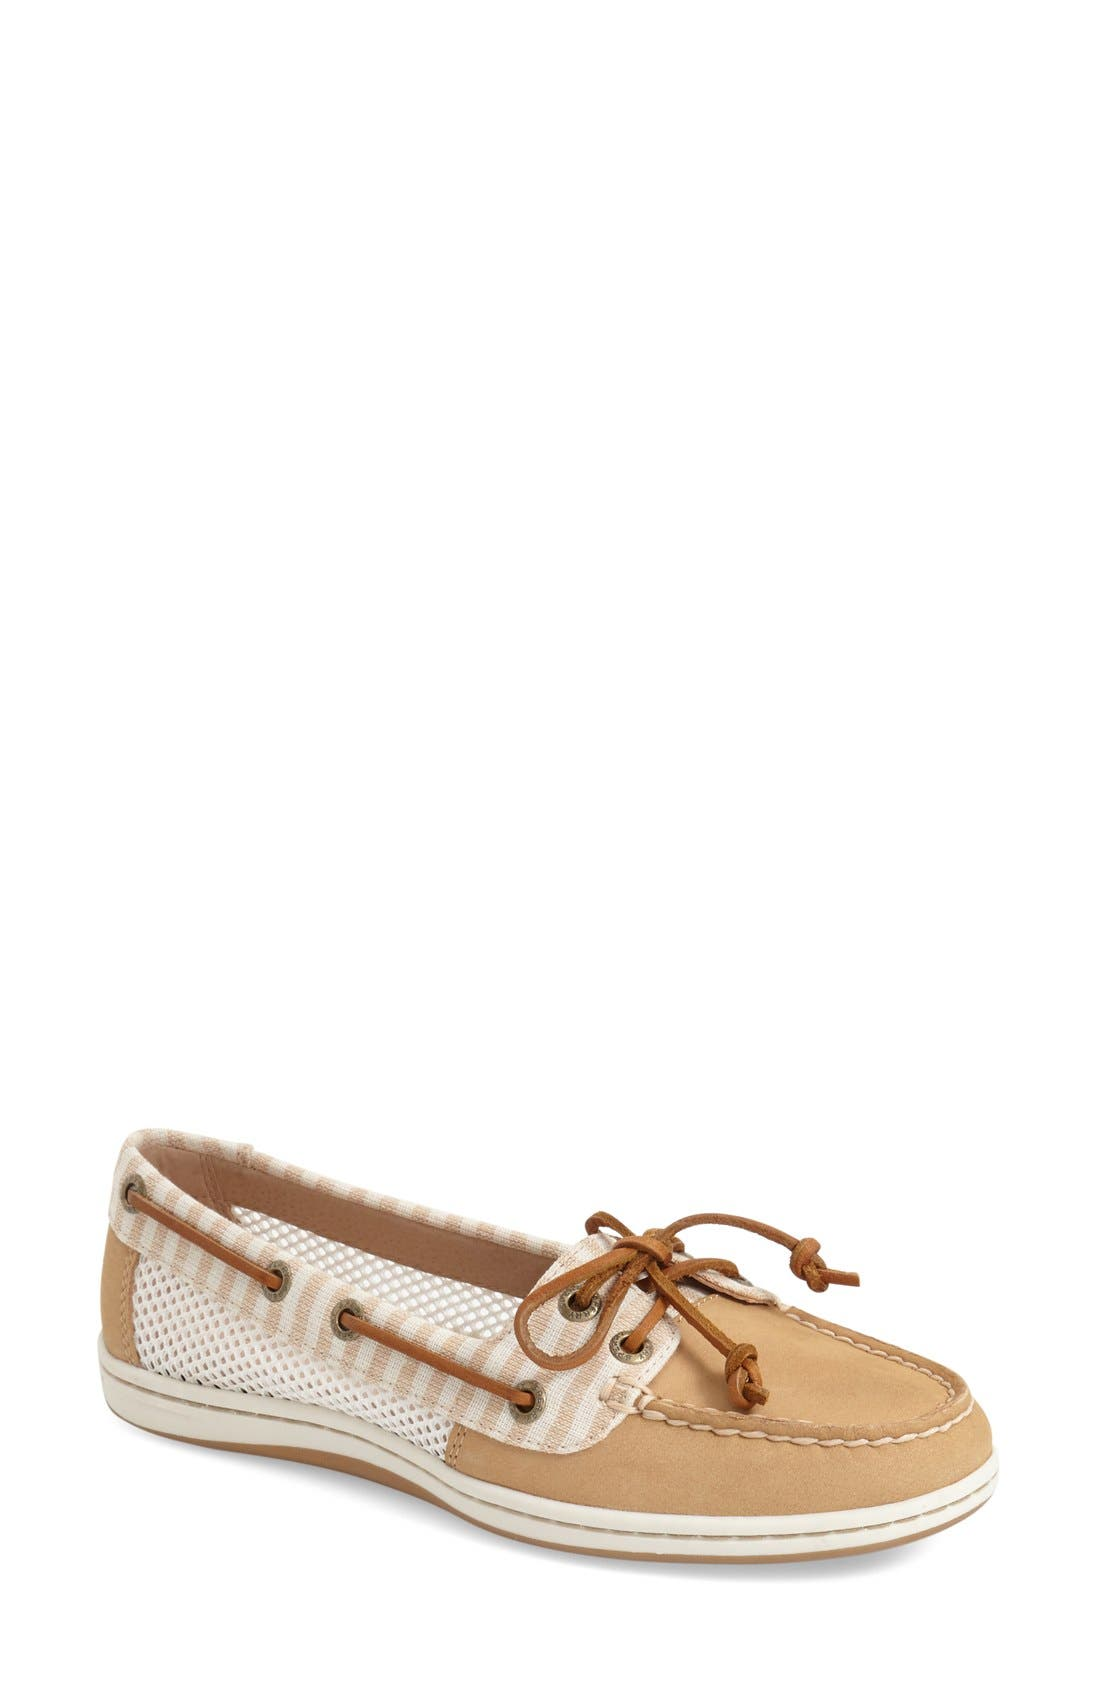 'Firefish' Boat Shoe,                             Main thumbnail 8, color,